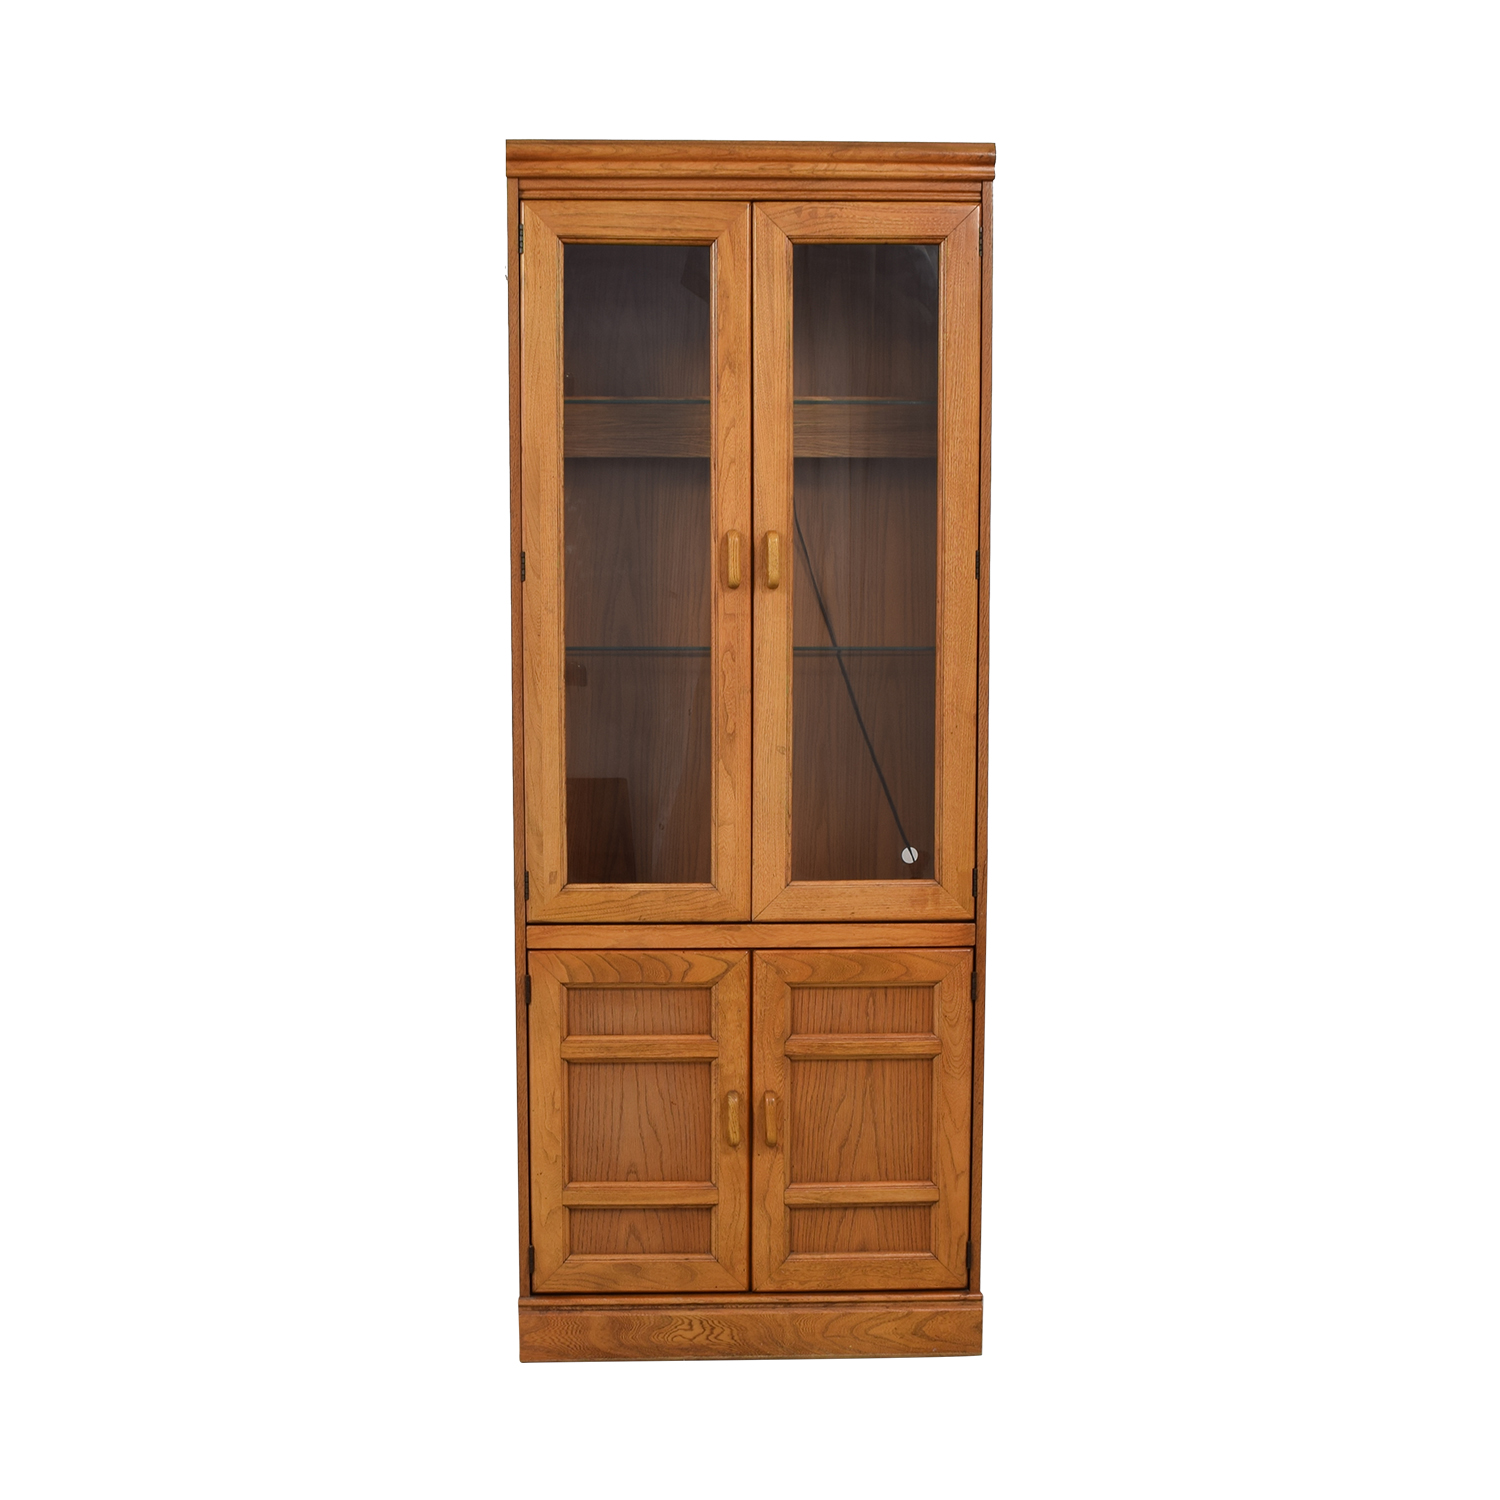 Macy's Wood and Glass China Cabinet / Cabinets & Sideboards